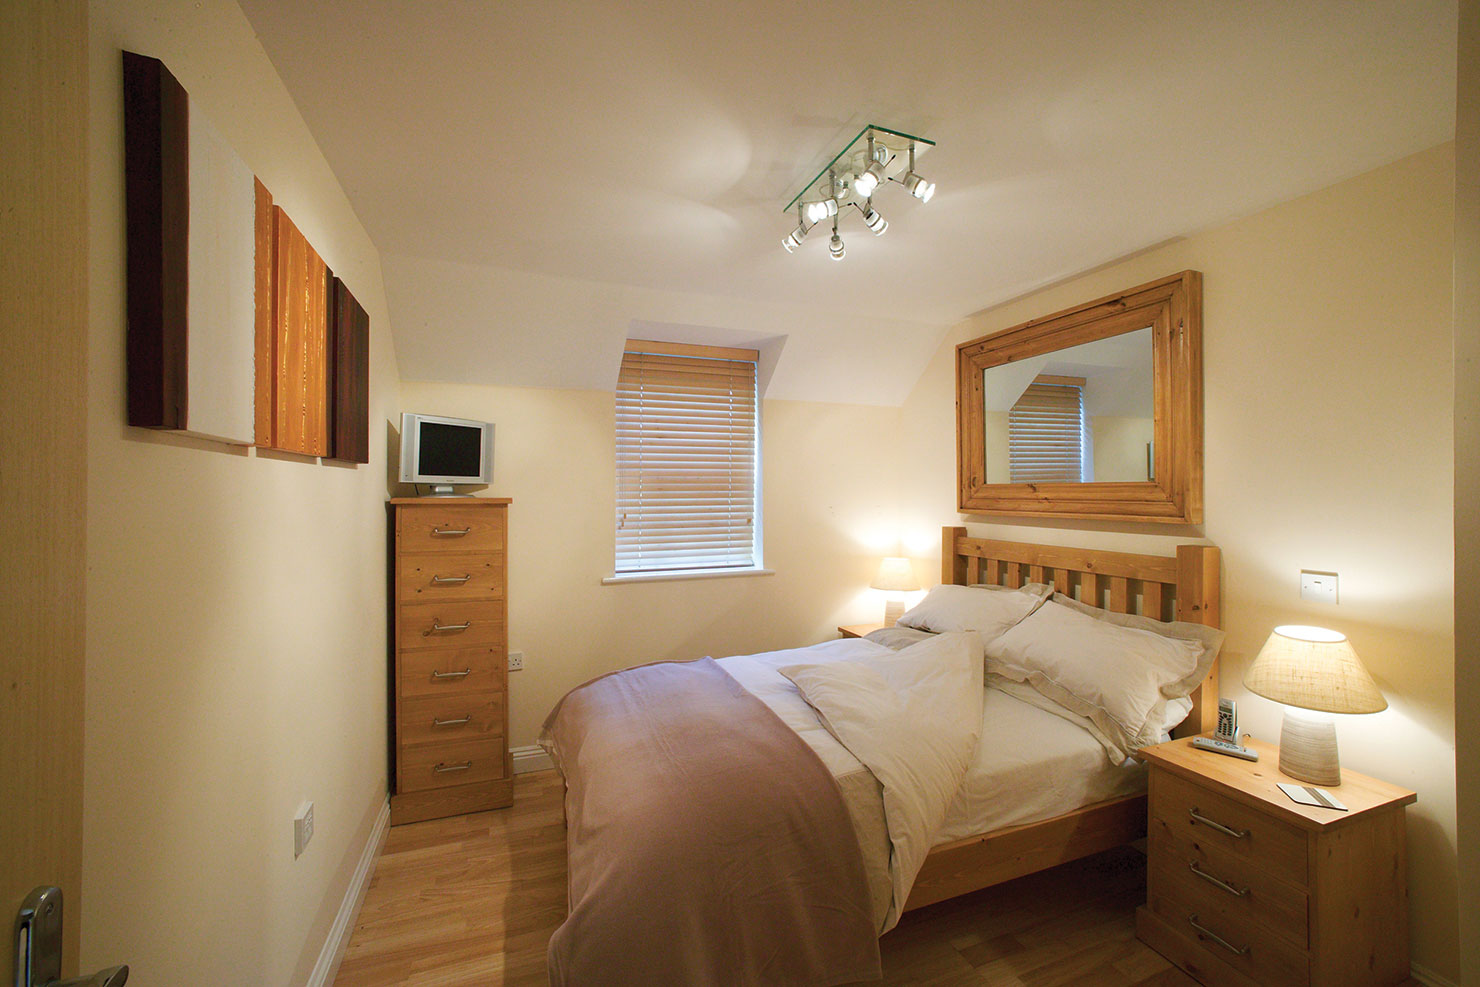 Newbury-Serviced-Apartments,-UK---Smeaton-Court-Apartments,-Available-Now!-Book-Luxurious-Accommodation-with-Beautiful-Interior-&-Free-Parking-|-Urban-Stay